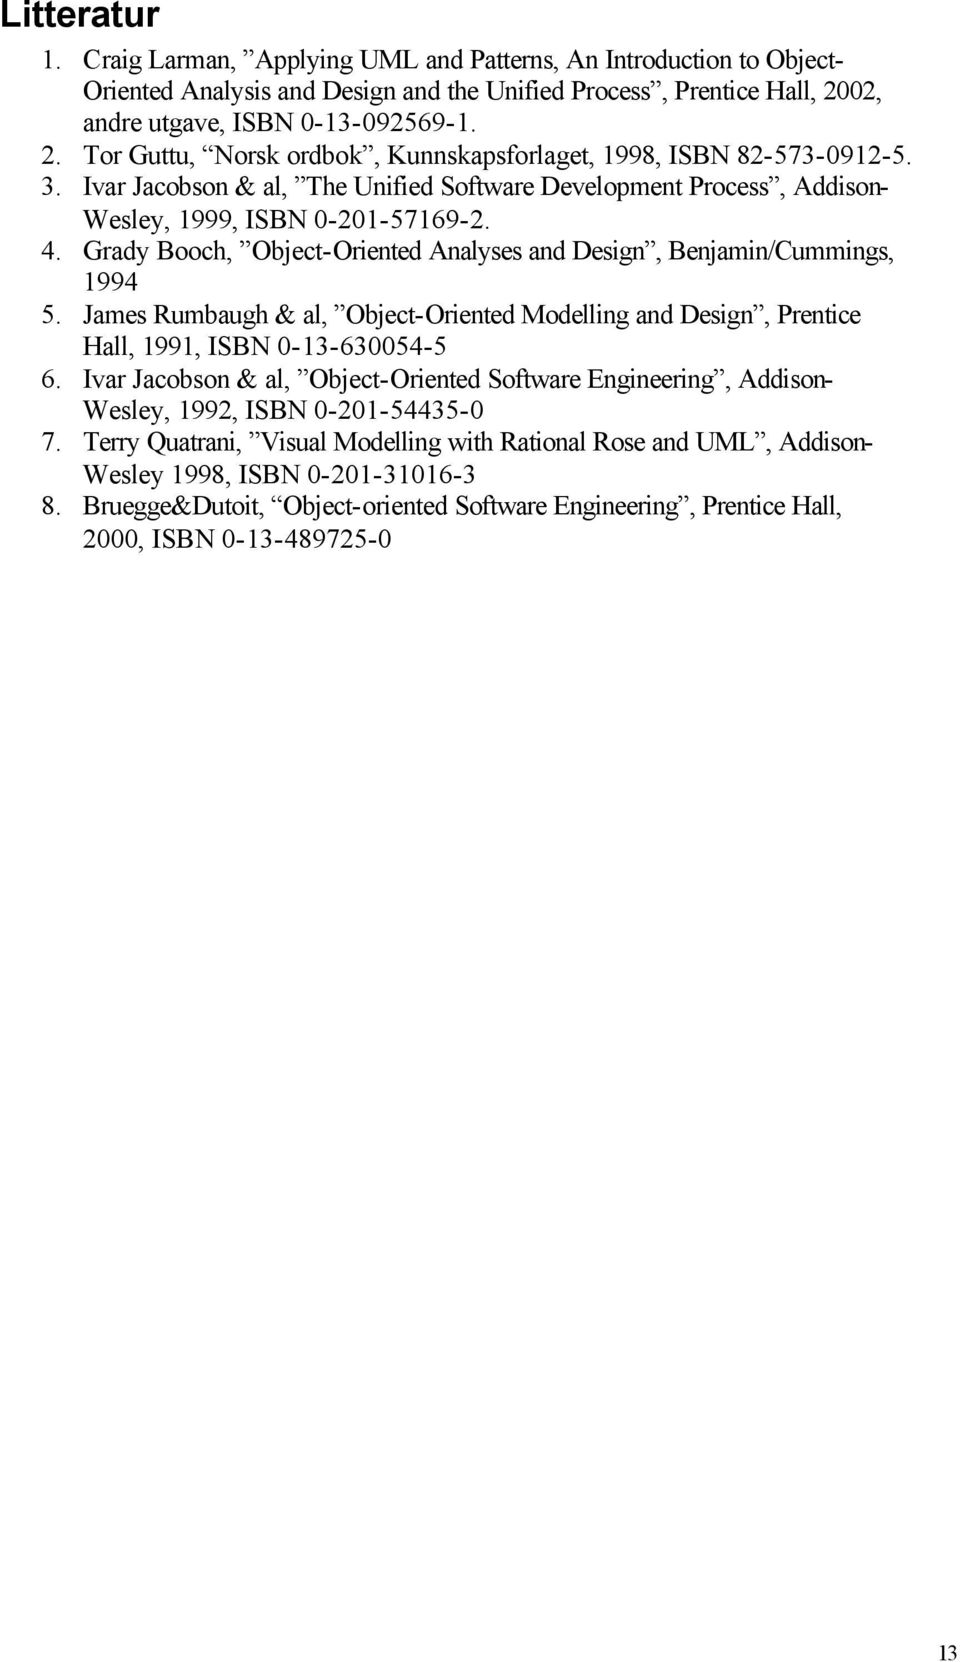 Ivar Jacobson & al, The Unified Software Development Process, Addison- Wesley, 1999, ISBN 0-201-57169-2. 4. Grady Booch, Object-Oriented Analyses and Design, Benjamin/Cummings, 1994 5.